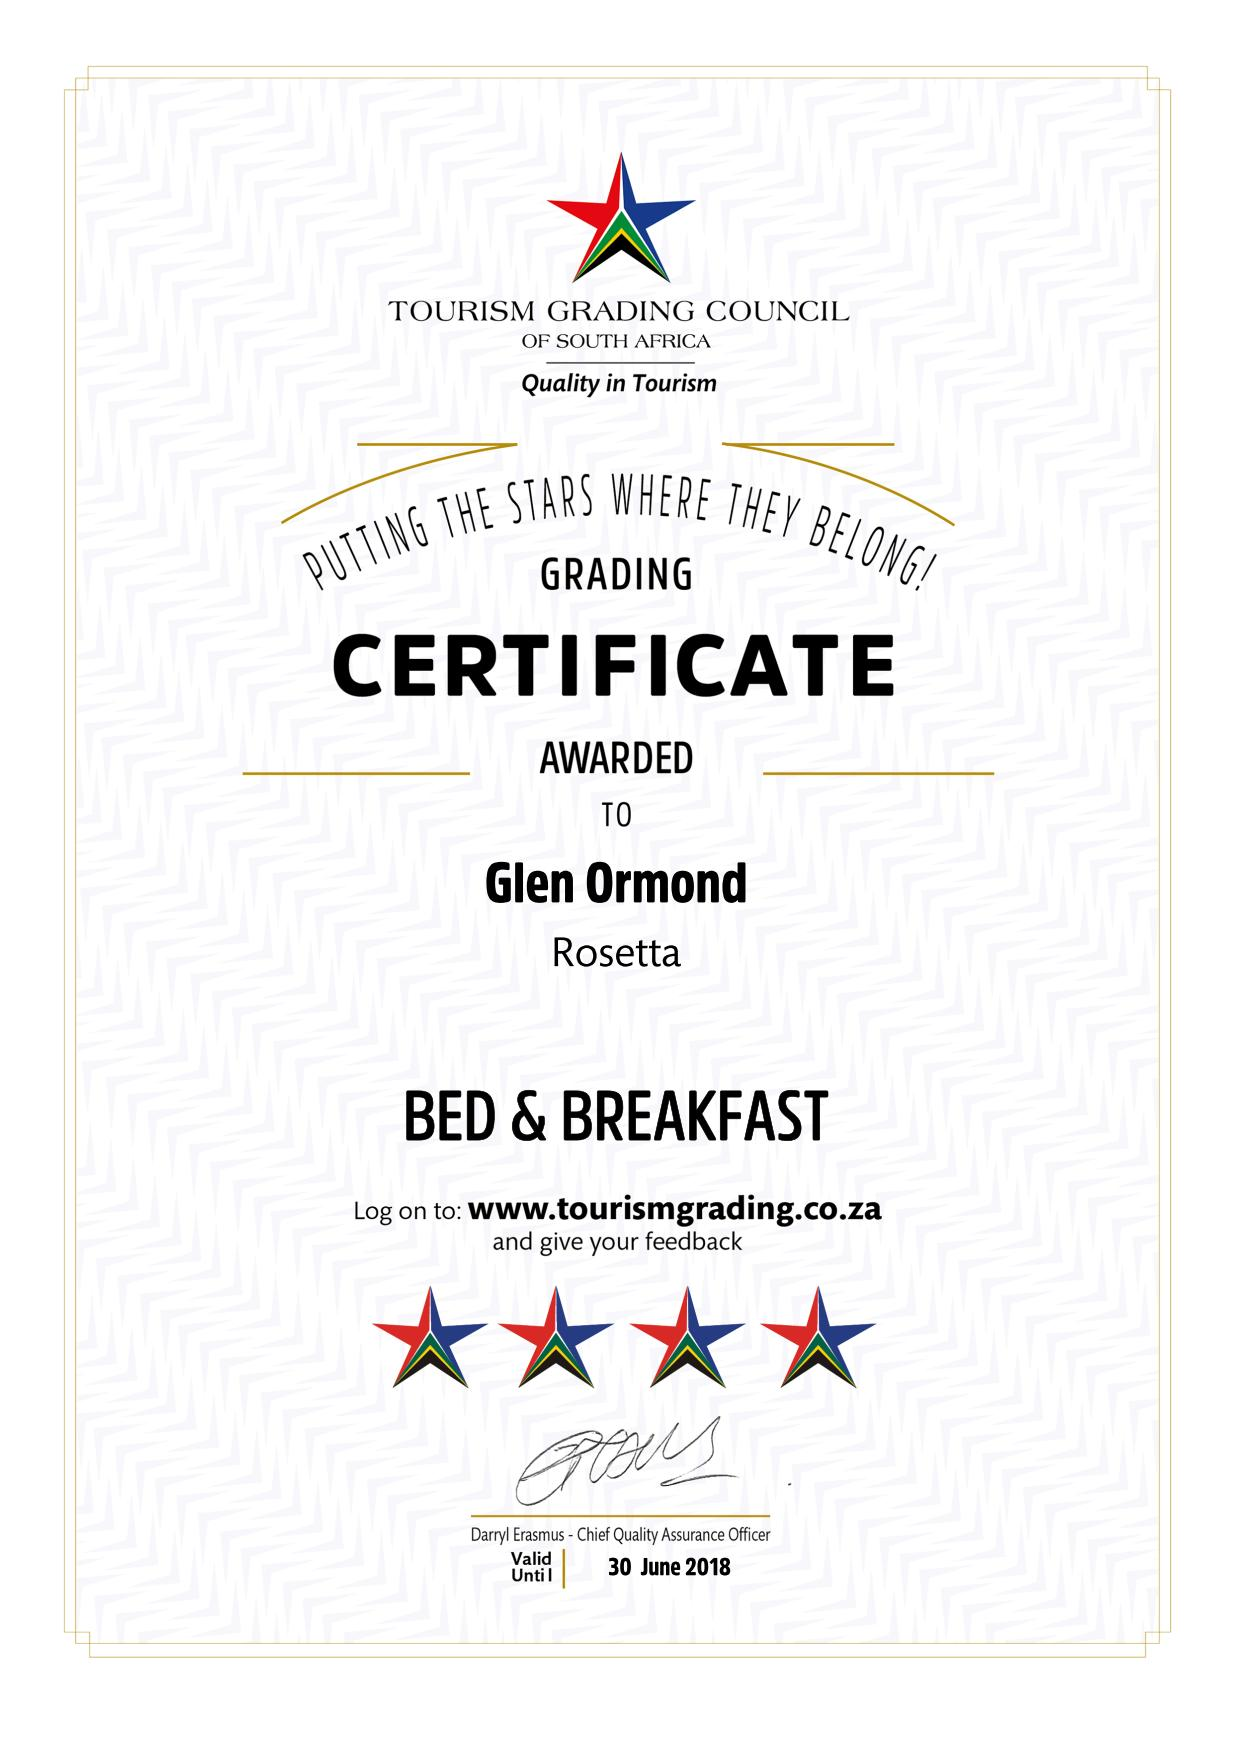 TGCSA 4 star certification